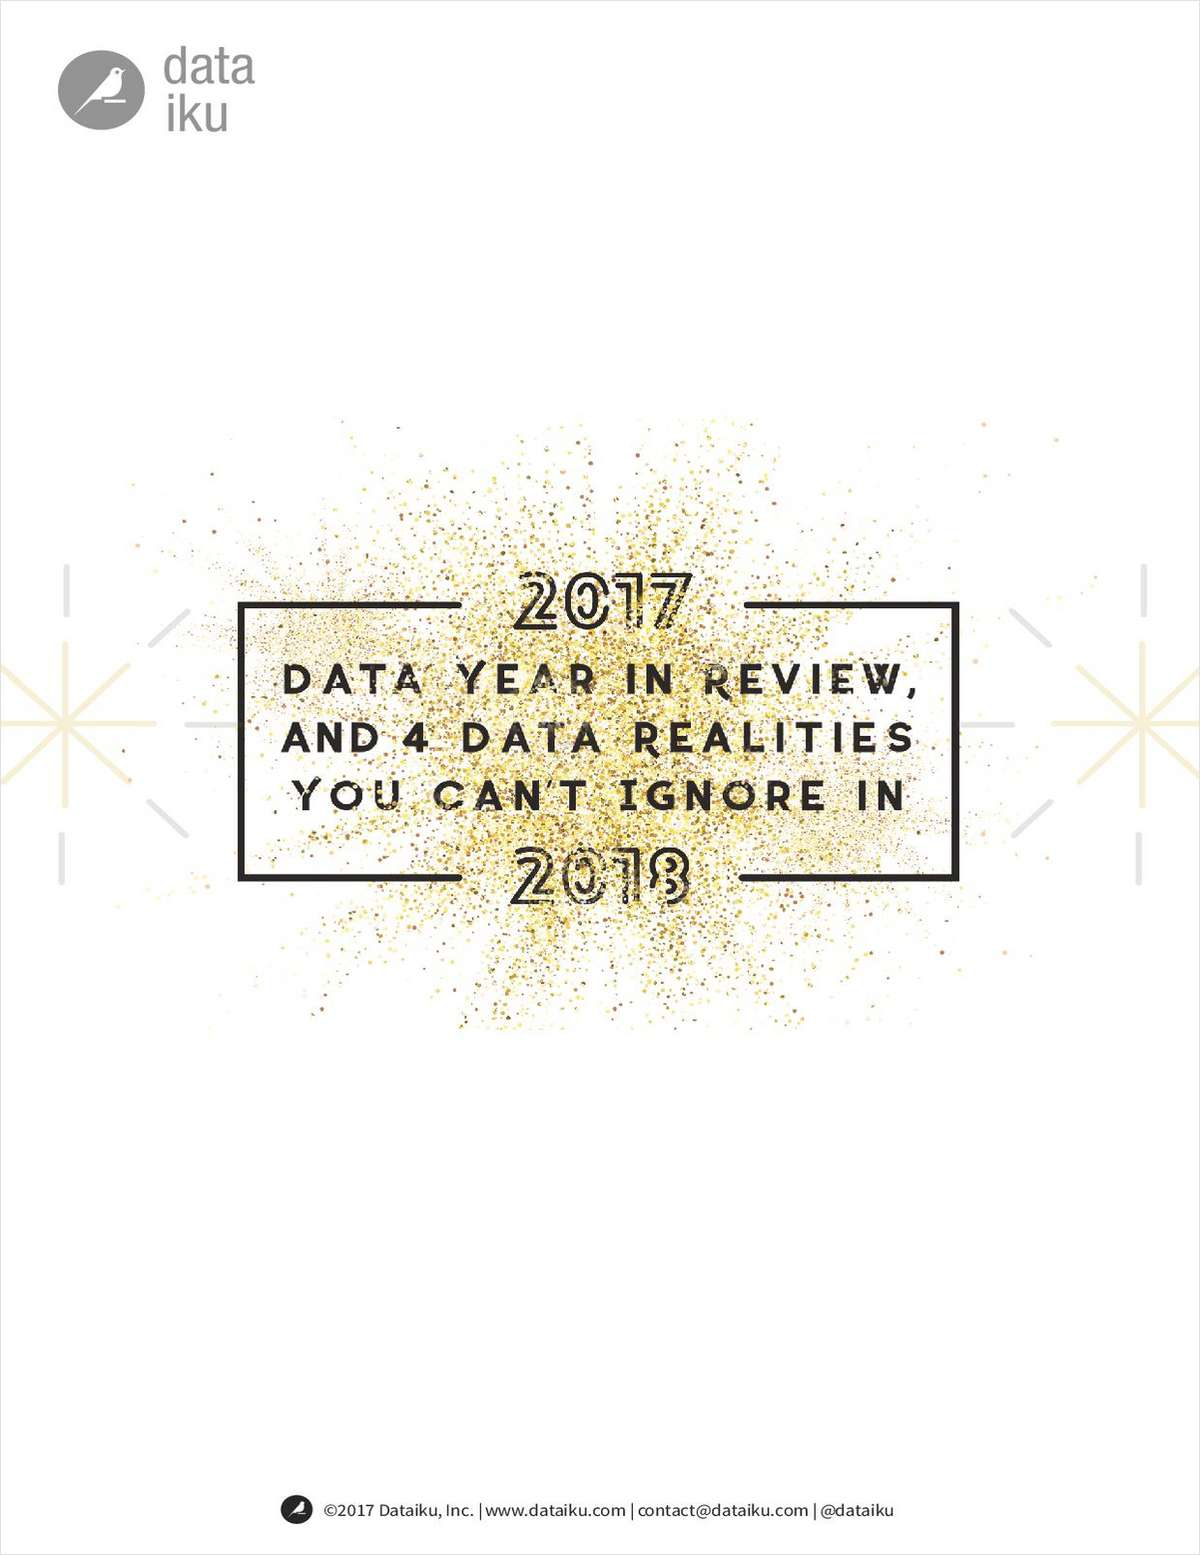 2017 Data Year in Review, and 4 Data Realities You Can't Ignore in 2018